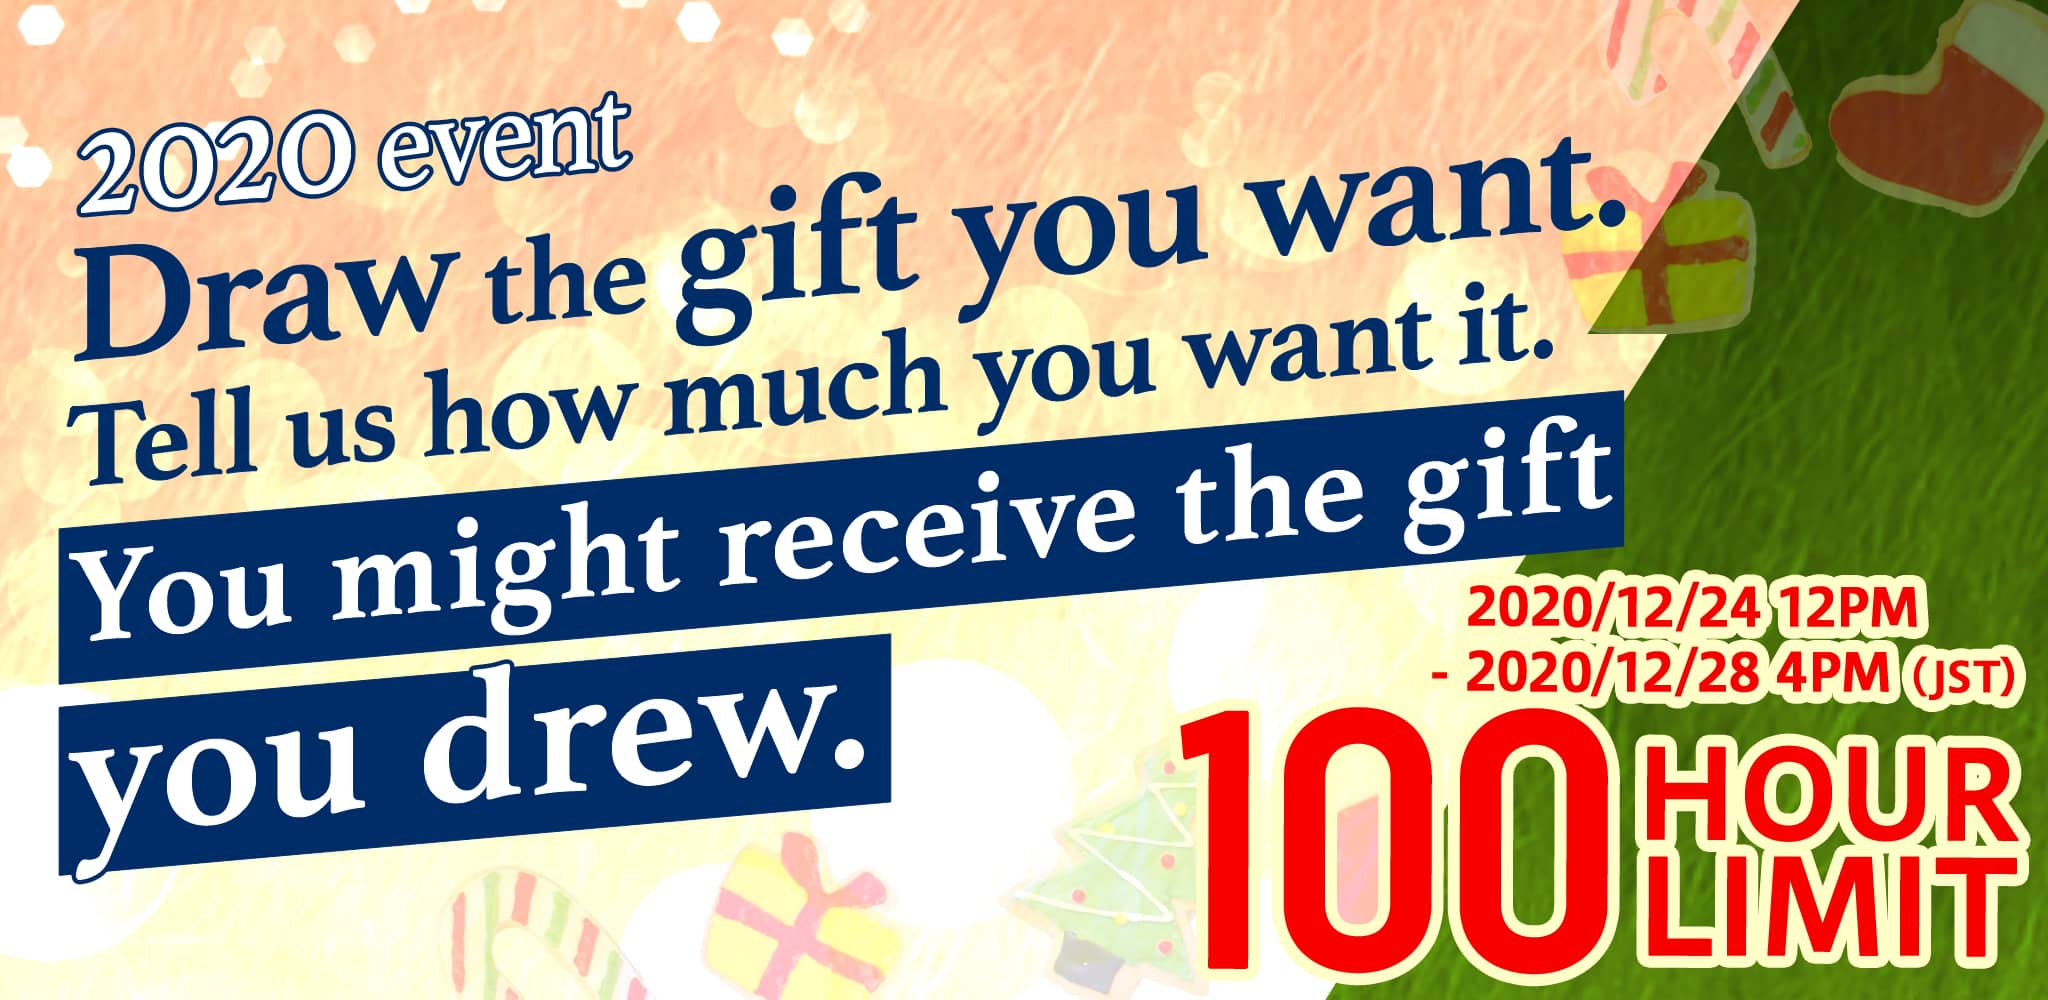 [100 hour limit] 2020 event - Draw the gift you want.  Tell us how much you want it.  You might receive the gift.